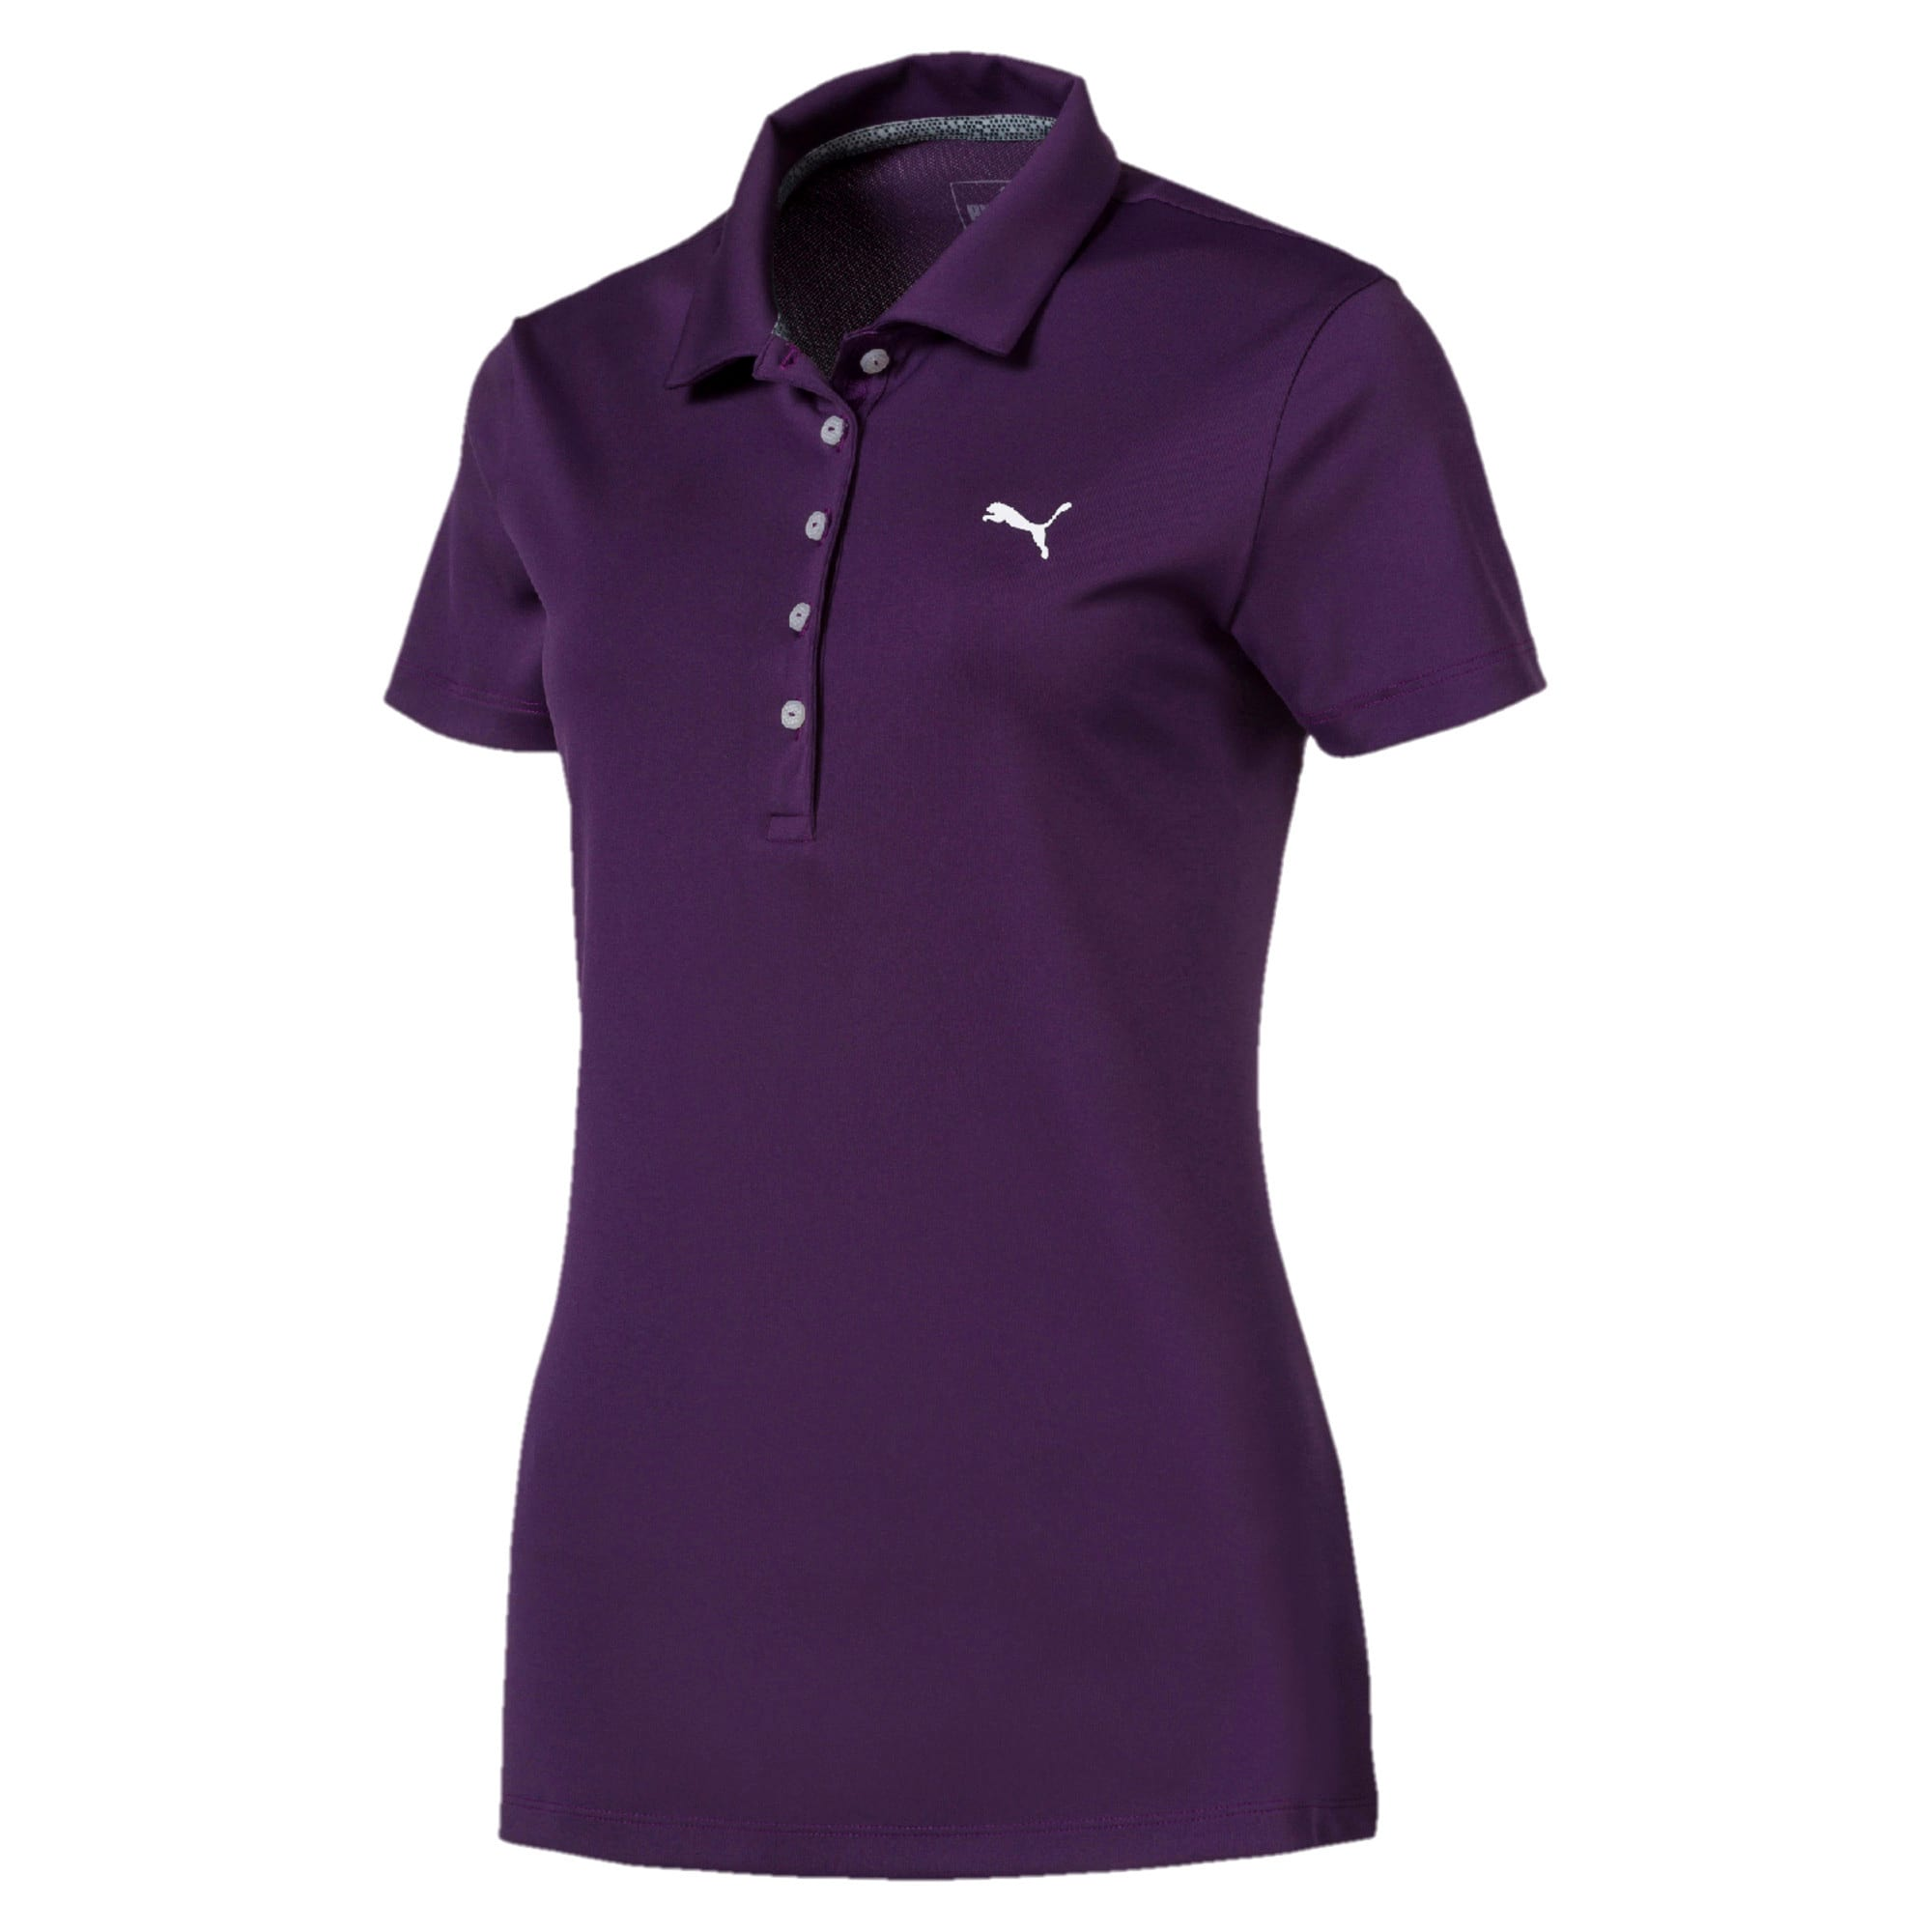 Thumbnail 4 of Golf Women's Pounce Polo, Indigo, medium